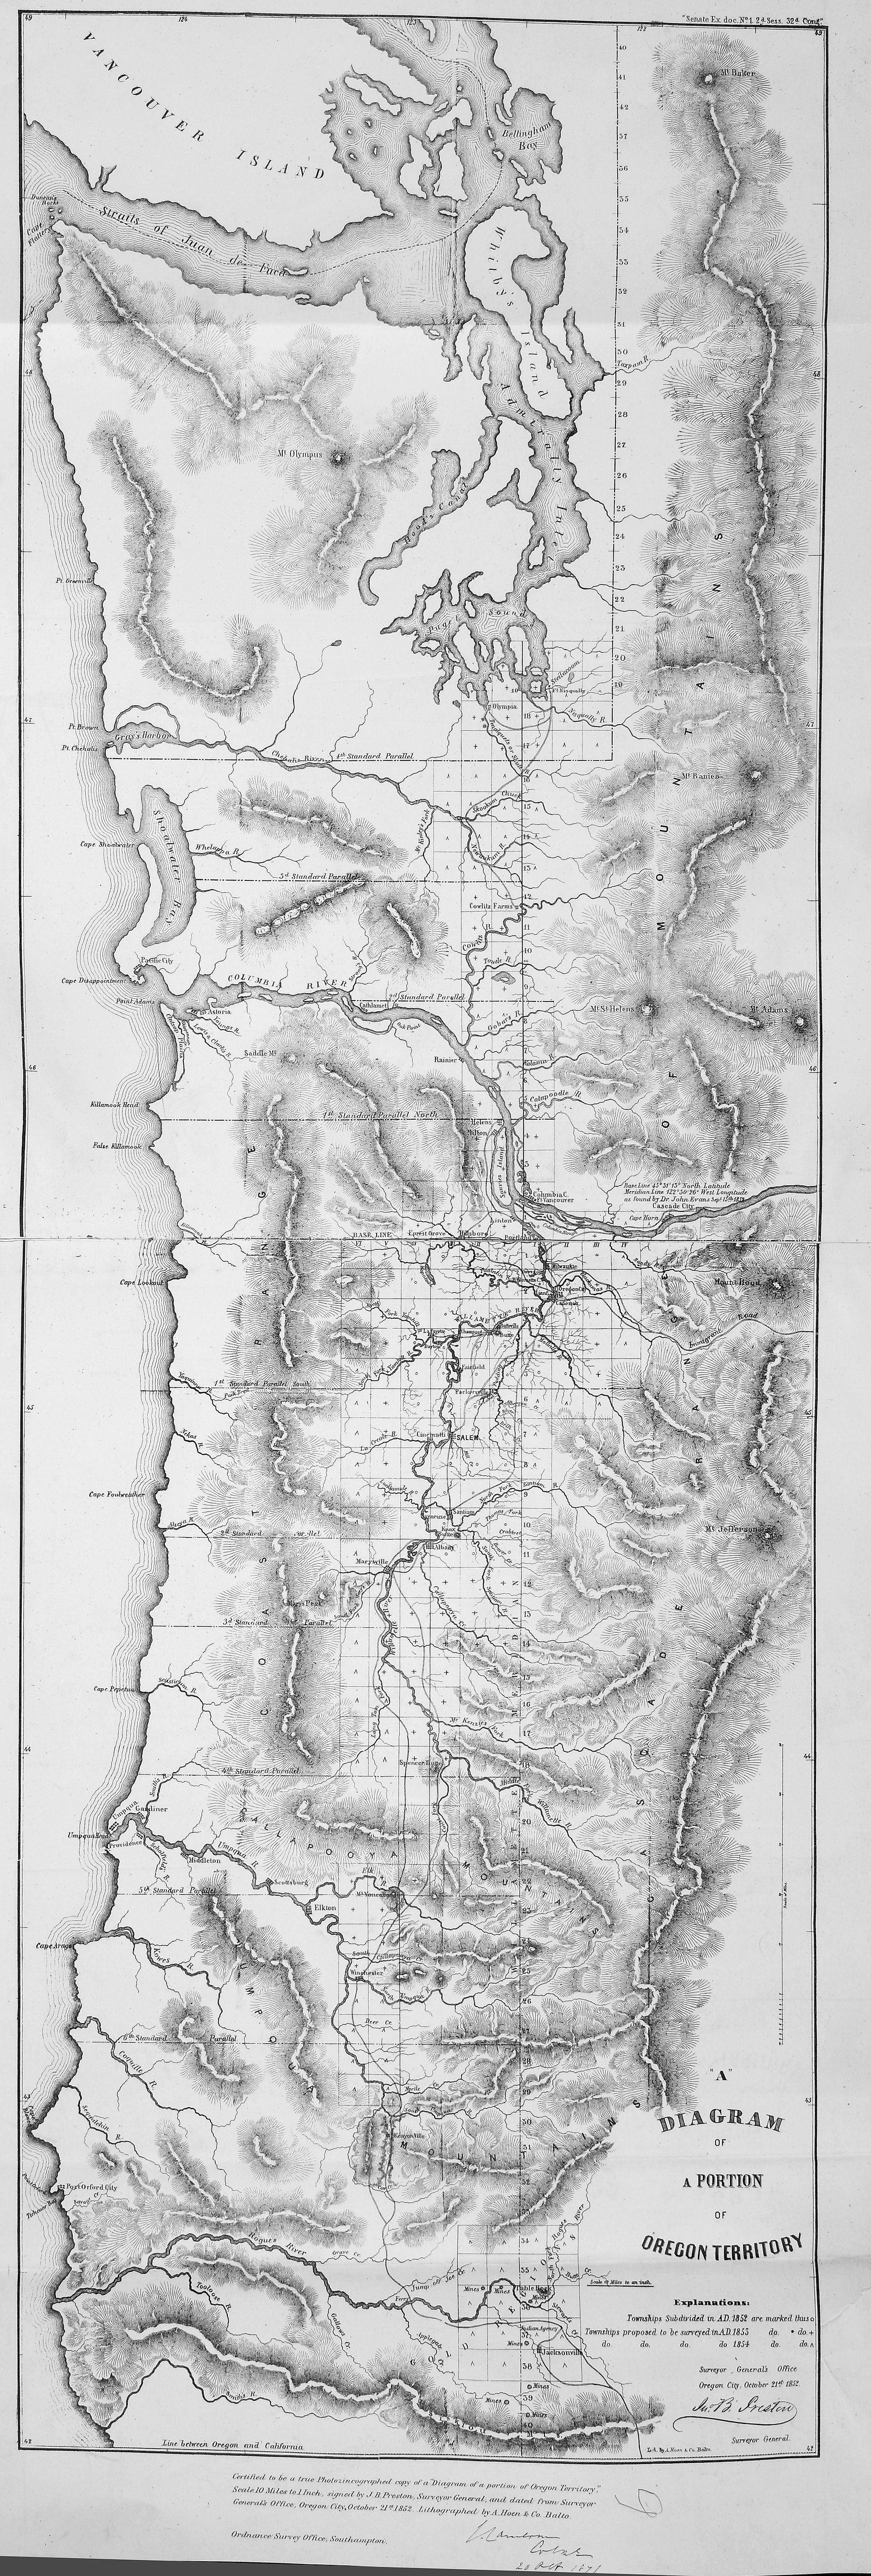 Diagram of a Portion of Oregon Territory